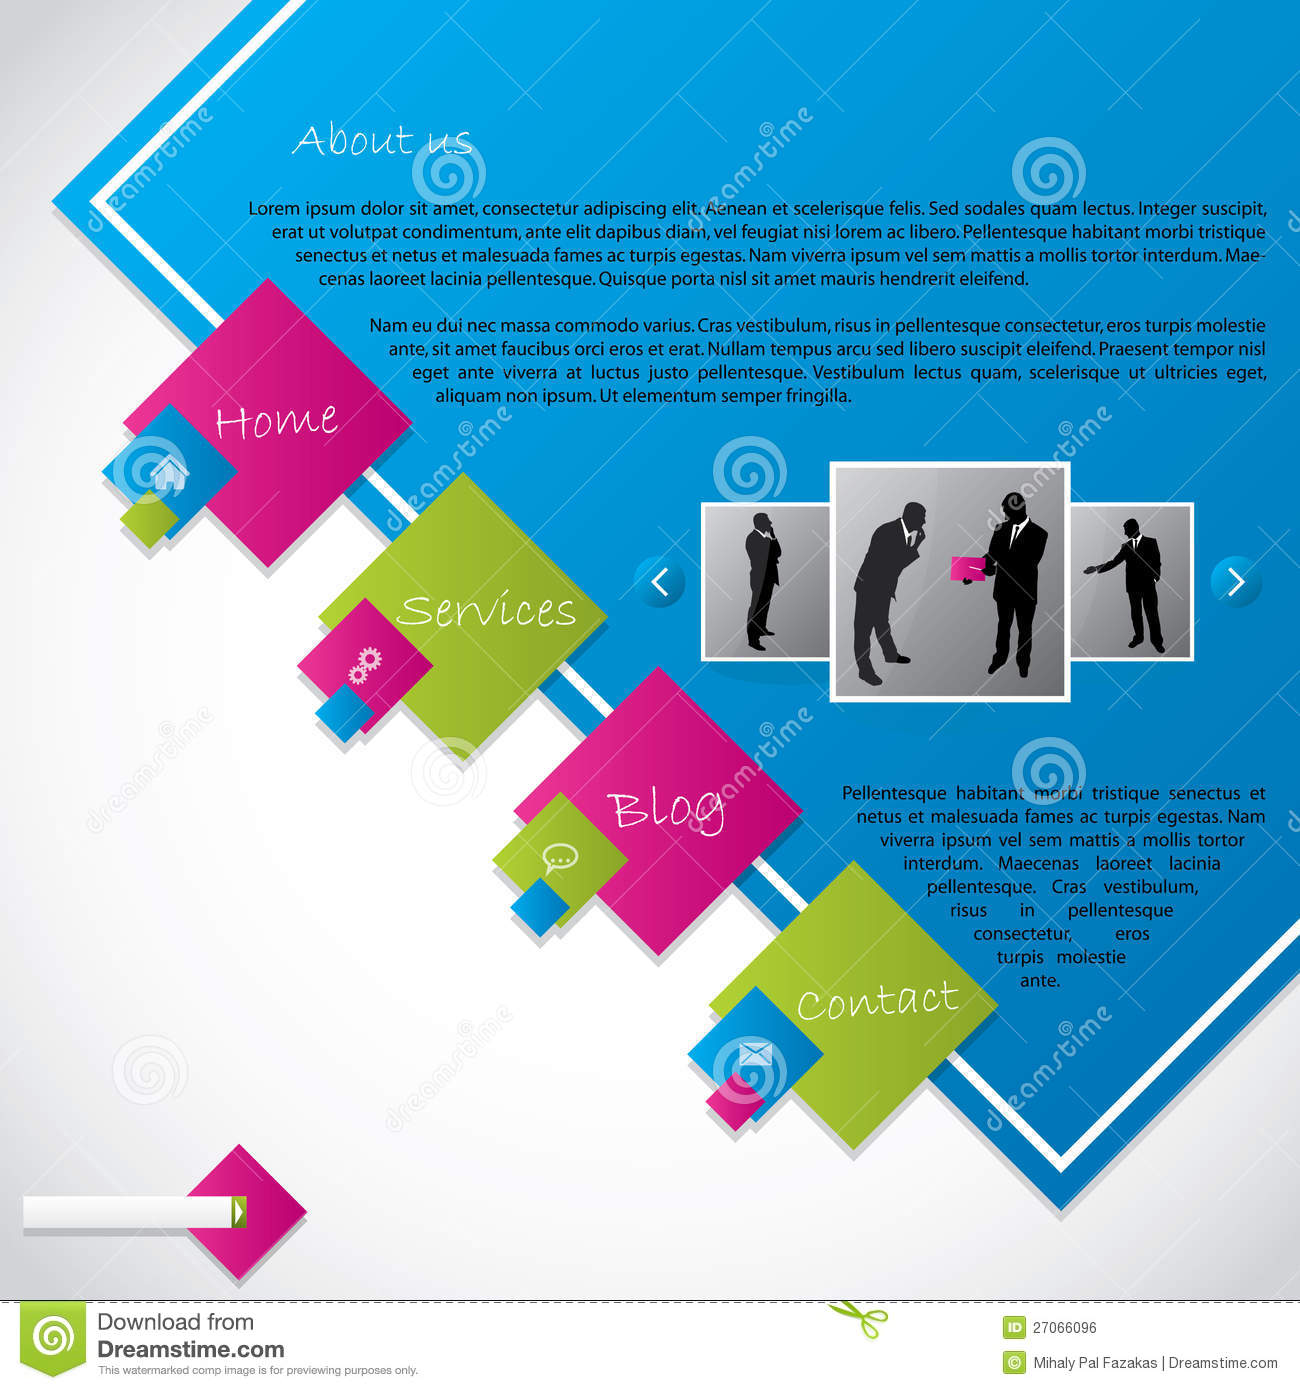 Cool Website Templates: Cool New Website Template Design Royalty Free Stock Image